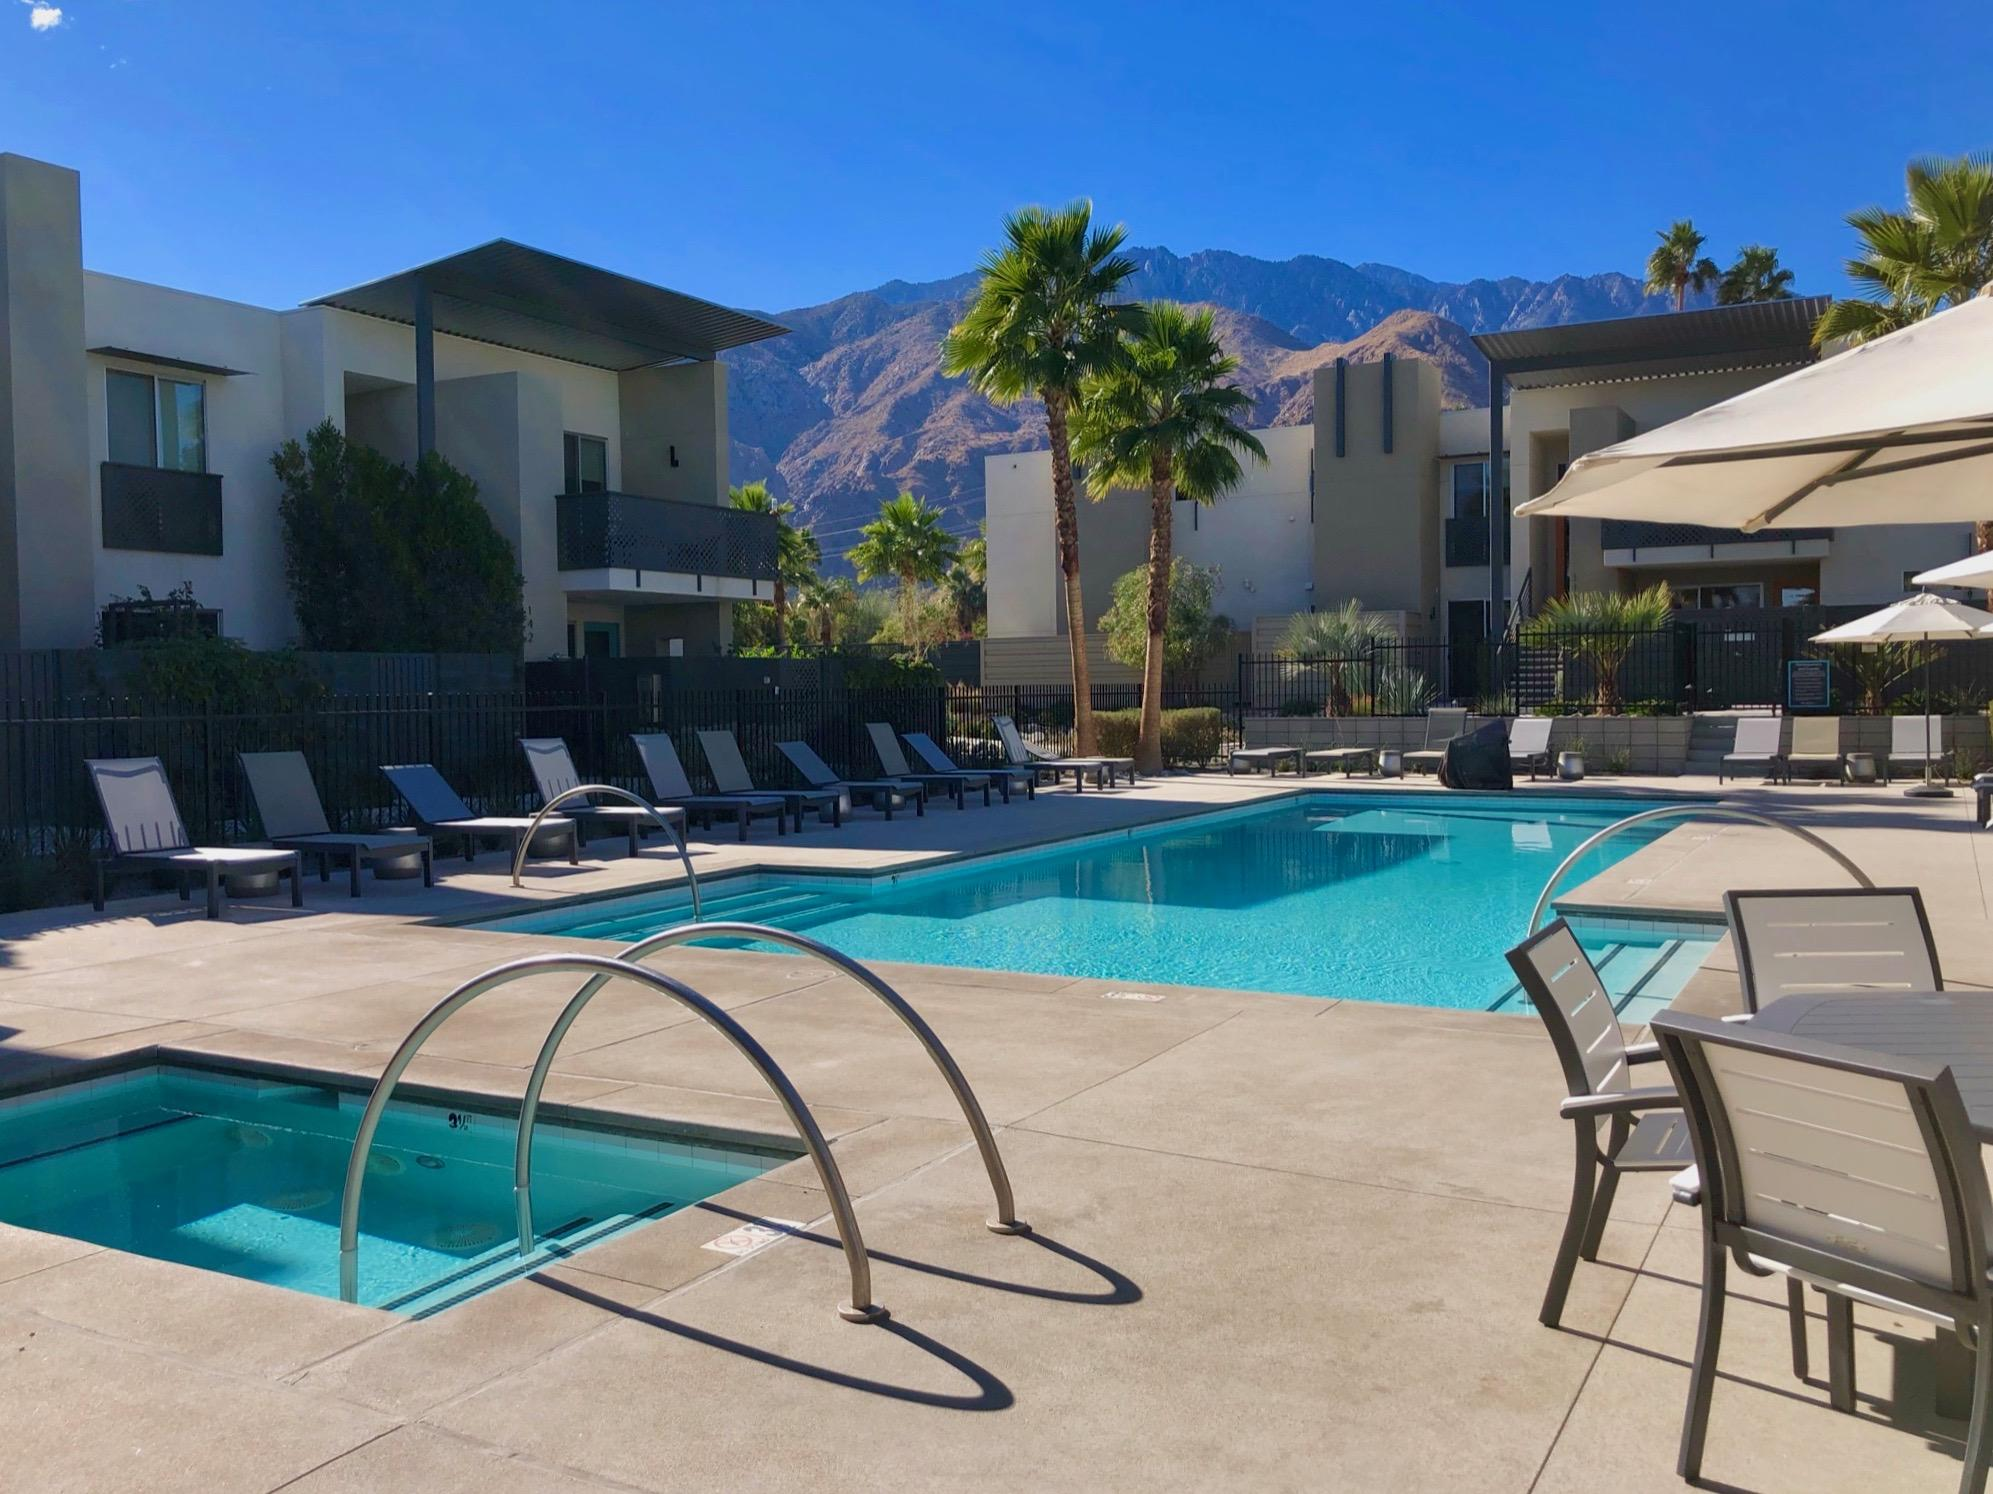 Photo of 161 The Riv, Palm Springs, CA 92262